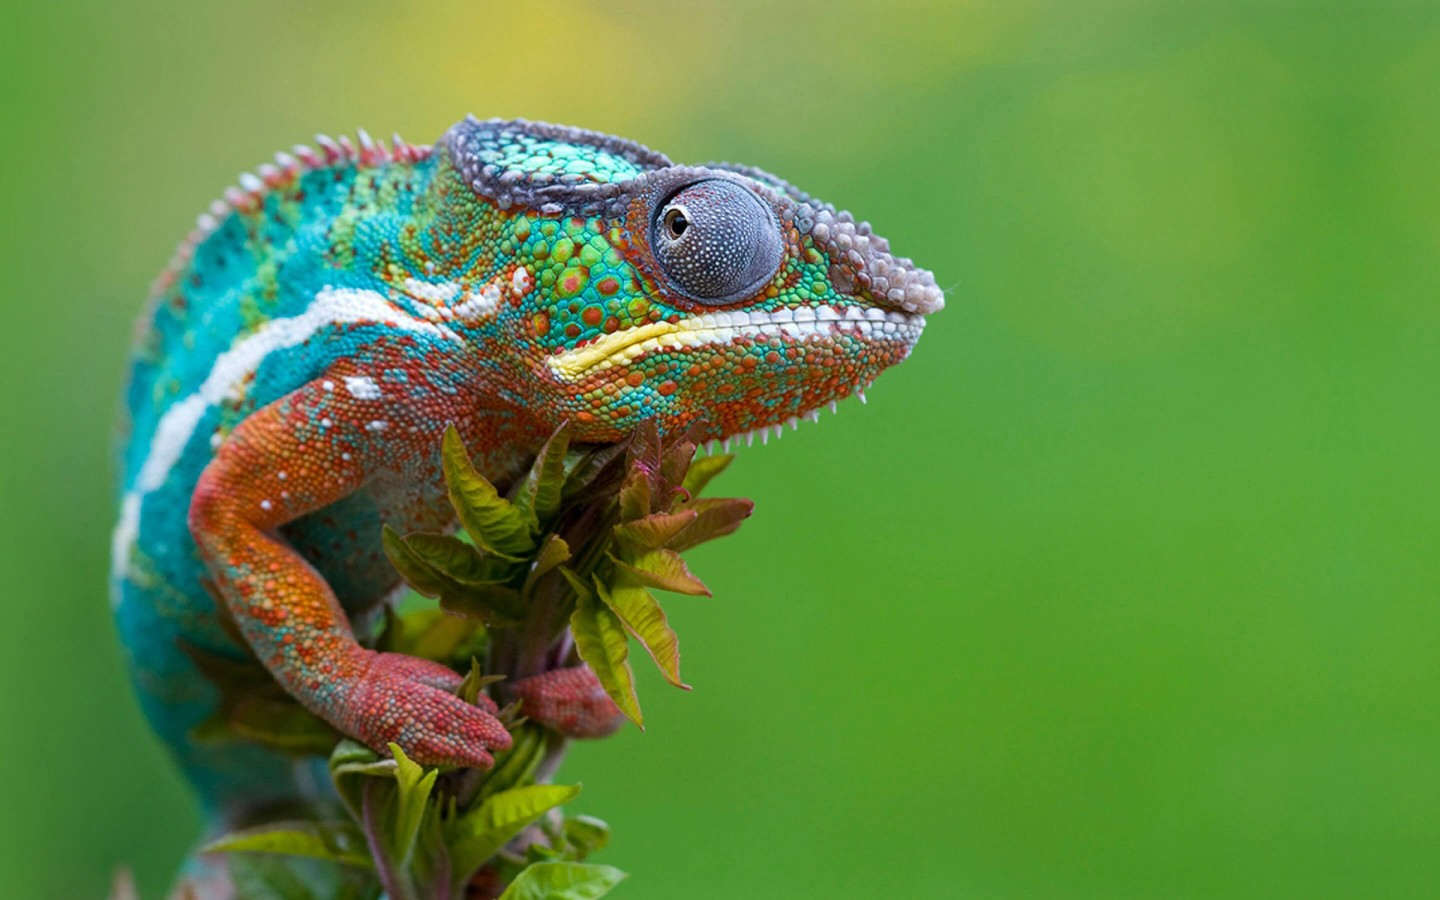 Colorful Panther Chameleon Wallpaper for Desktop 1440x900